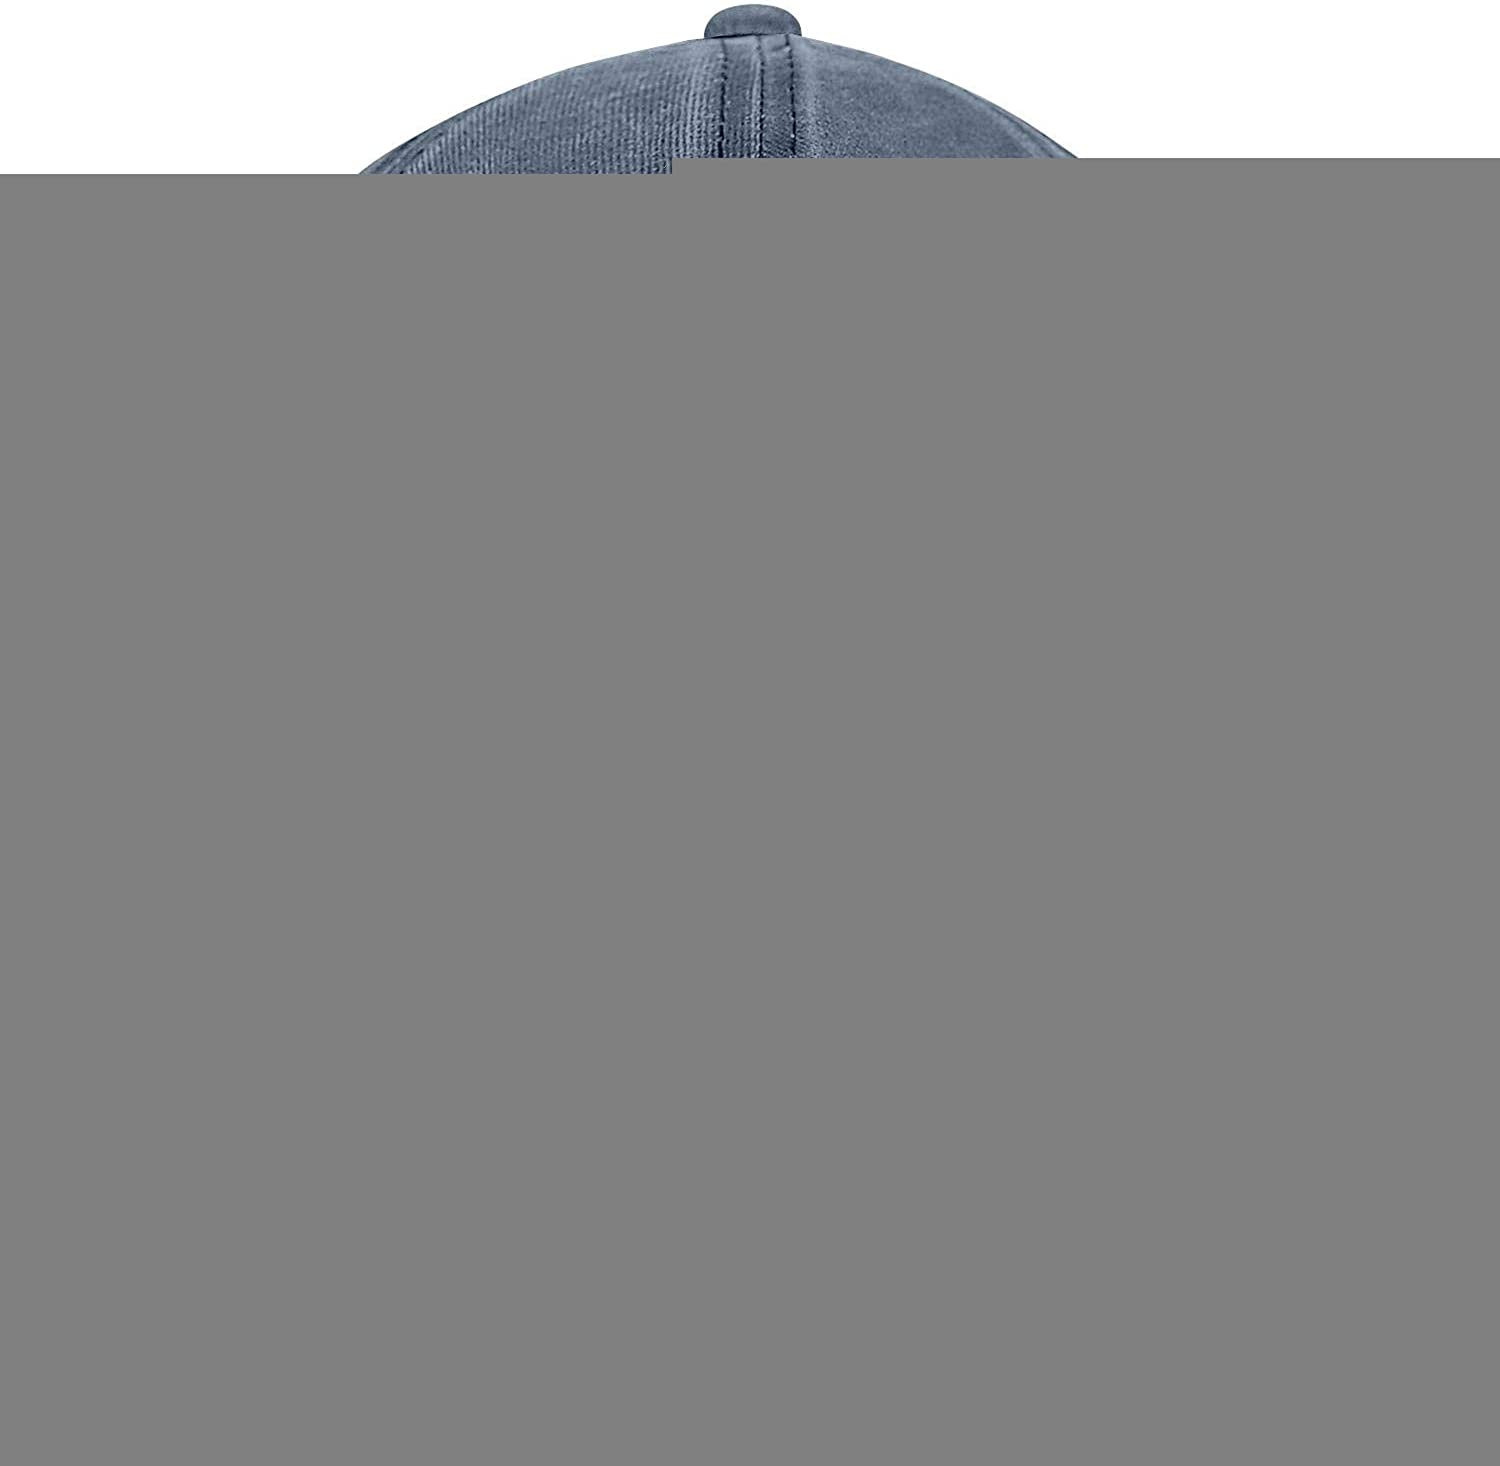 WintyHC Savage-Arms Cowboy Hat Dad Hat One Size Baseball Cap